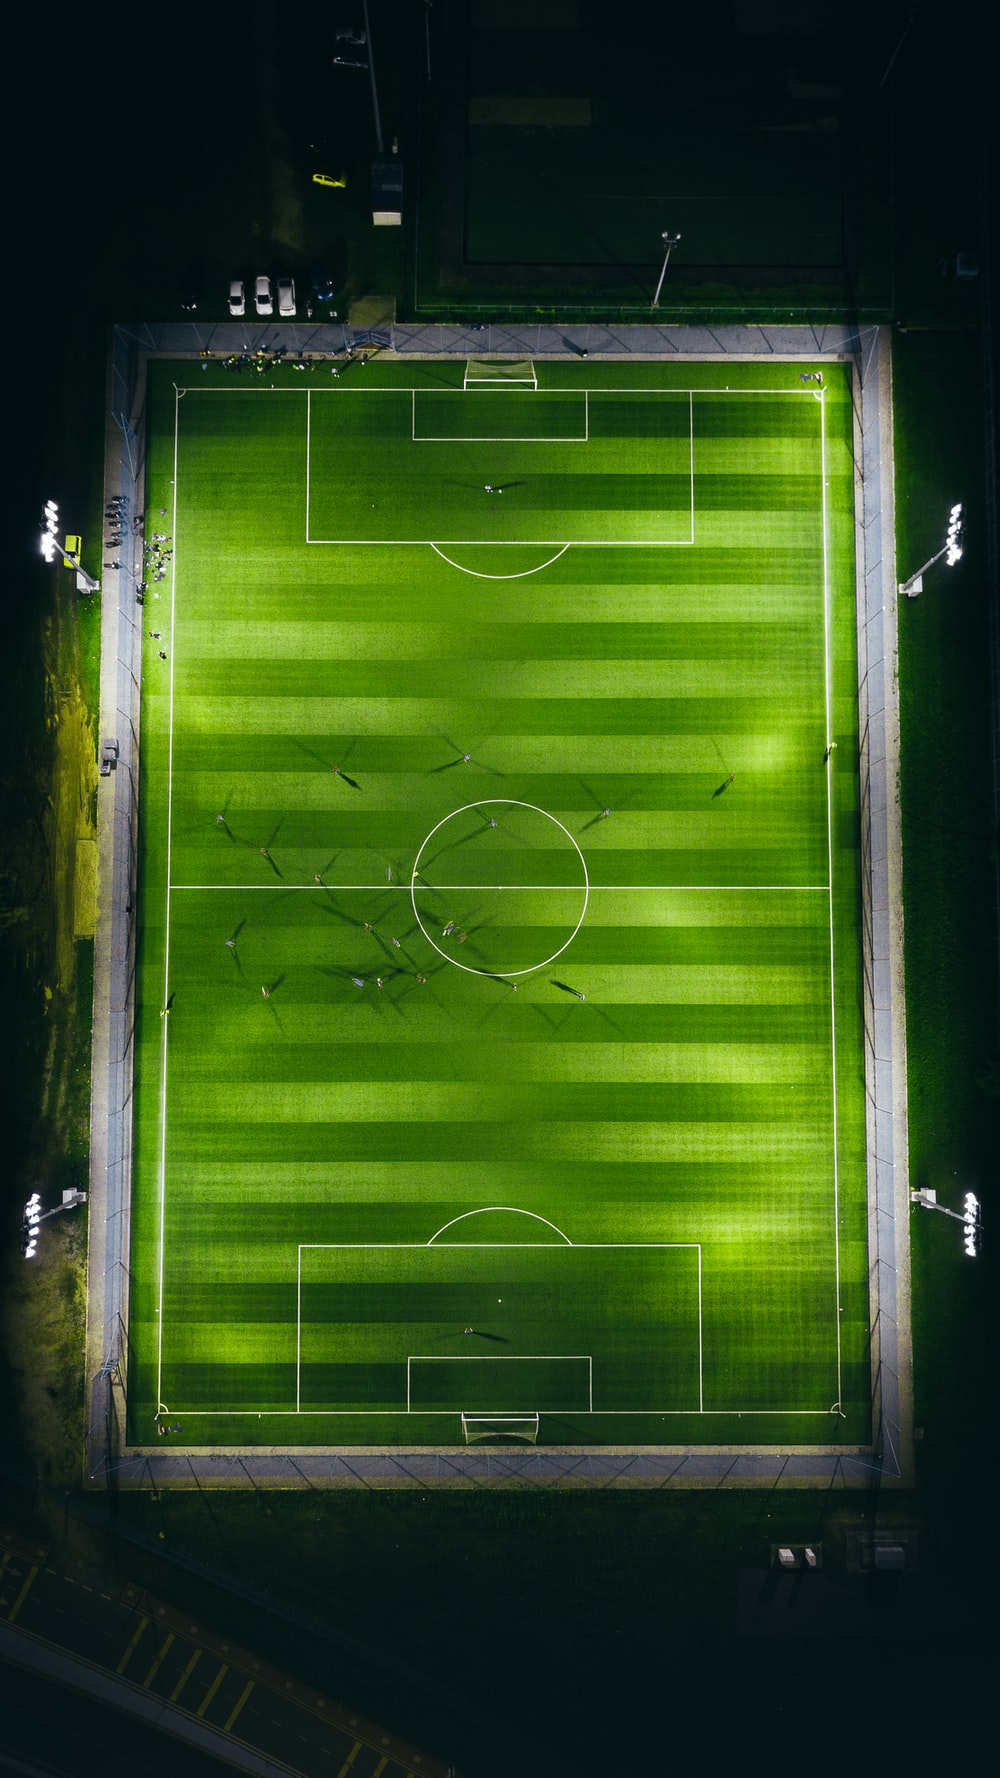 bird's-eye view photography of green soccer field with lights